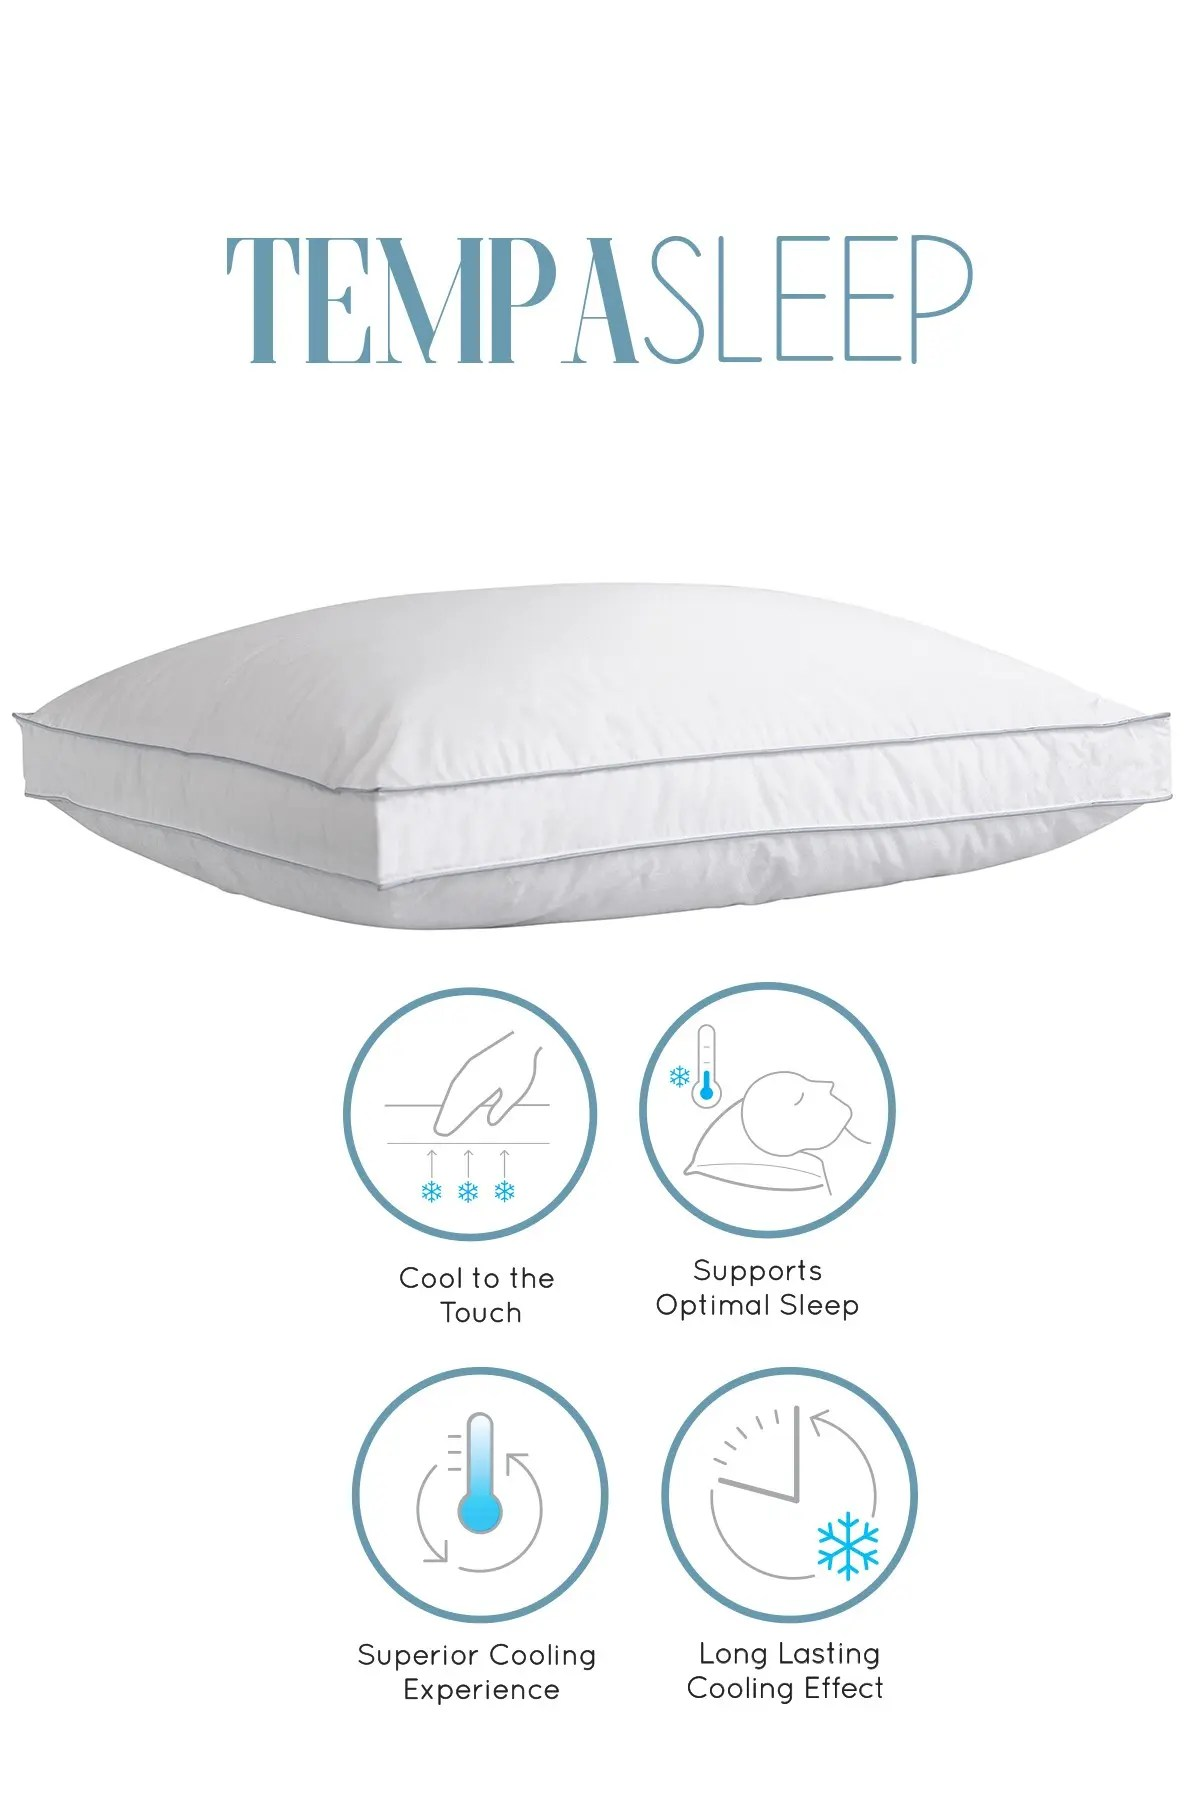 climarest tempa sleep king cotton cooling down alternative gusseted pillow nordstrom rack